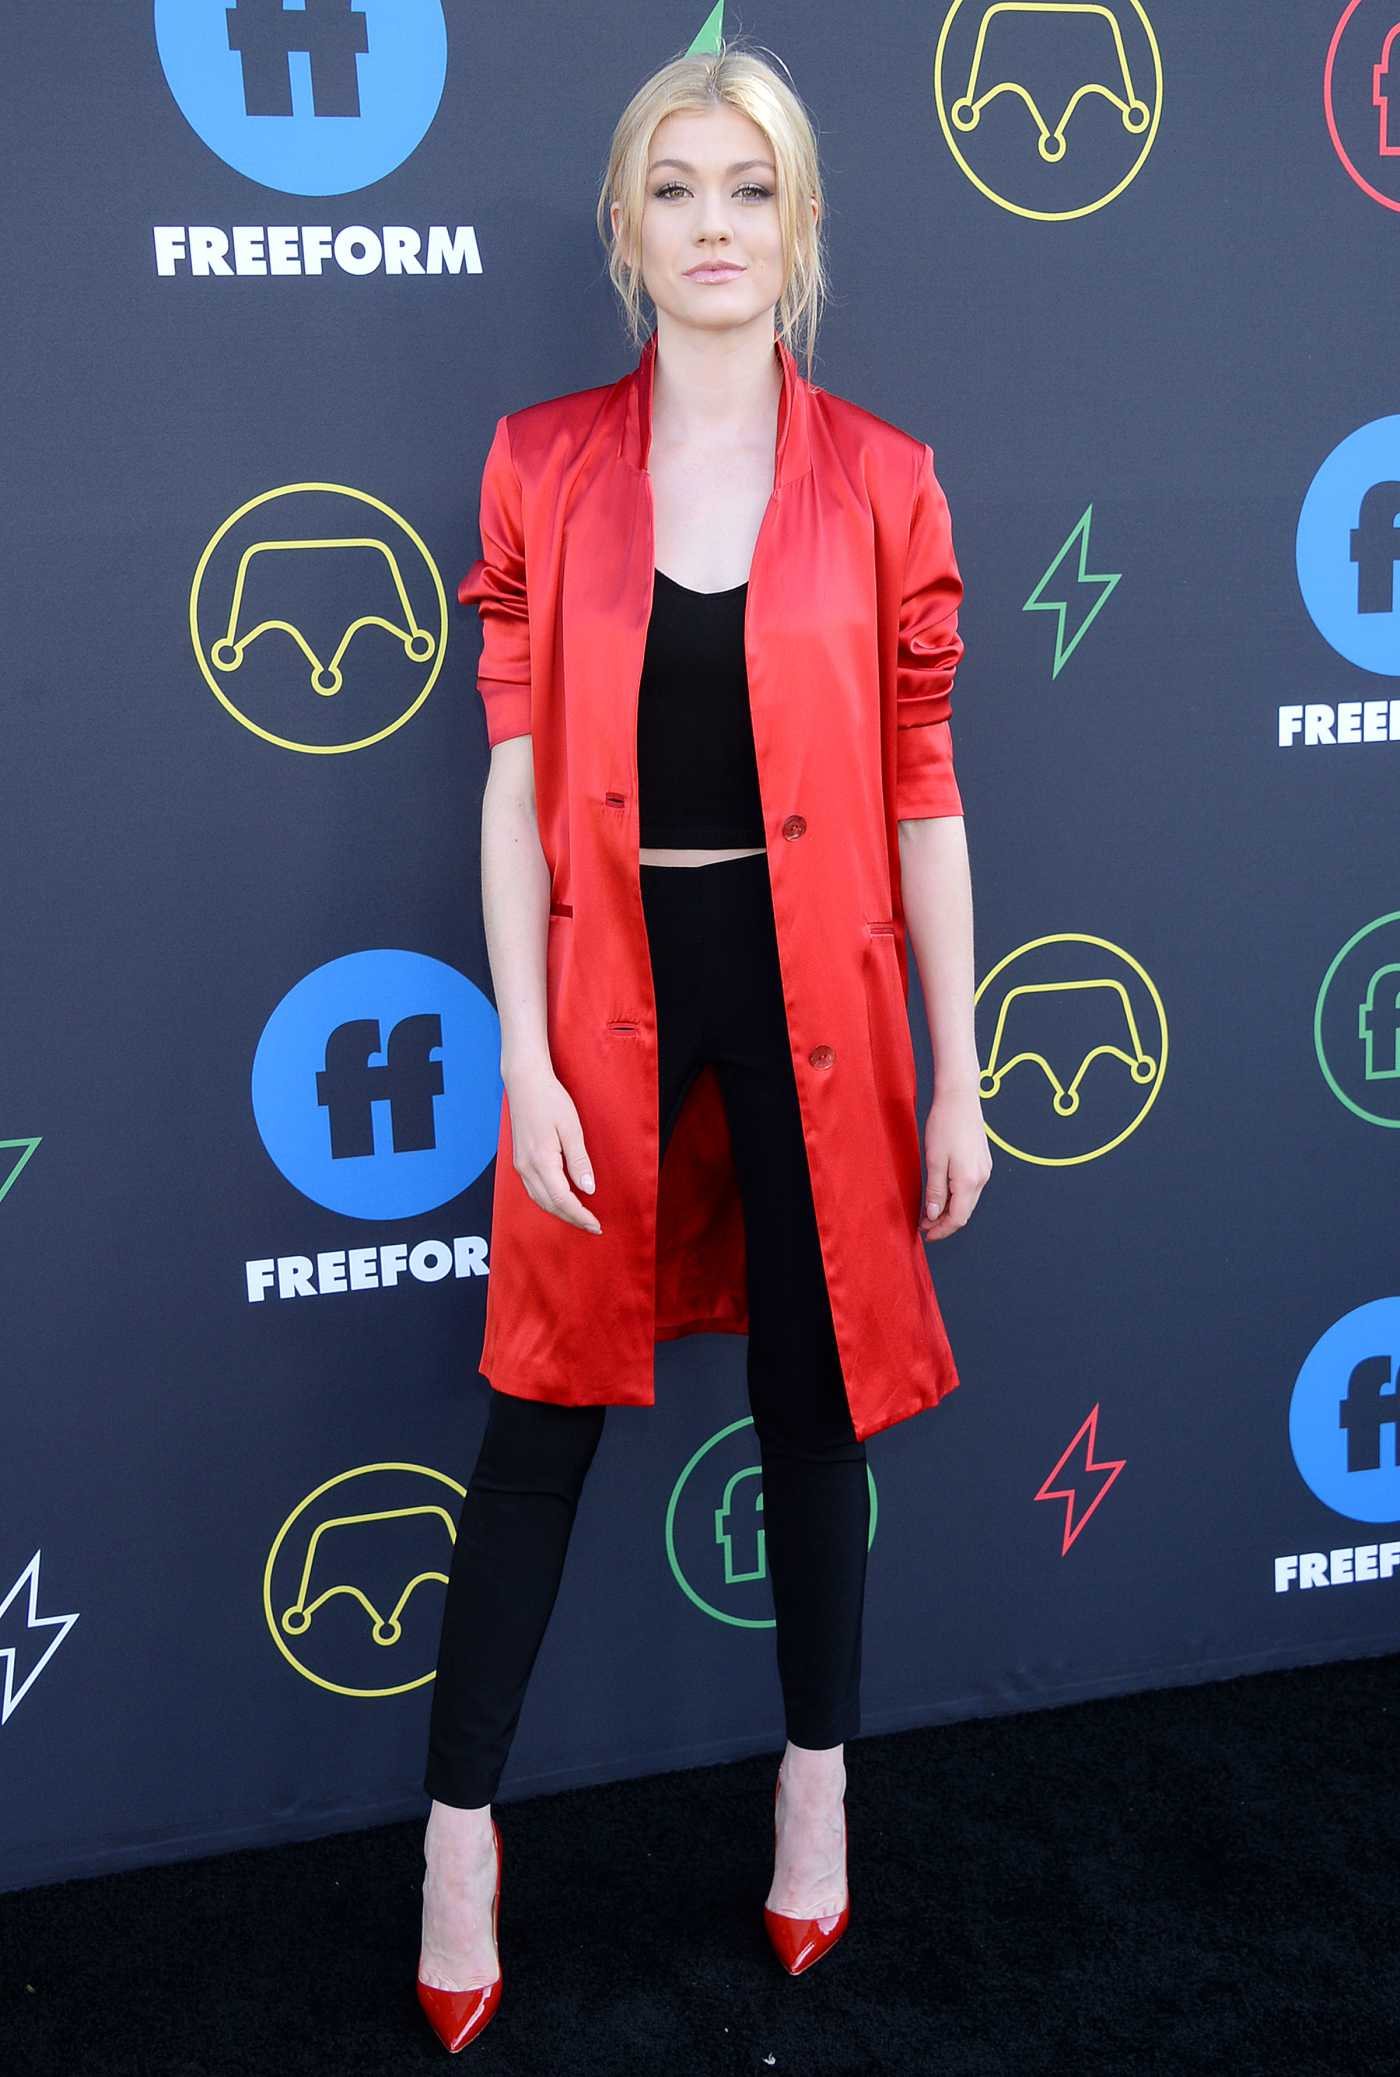 Katherine McNamara Attends 2019 Freeform Summit in LA 03/27/2019